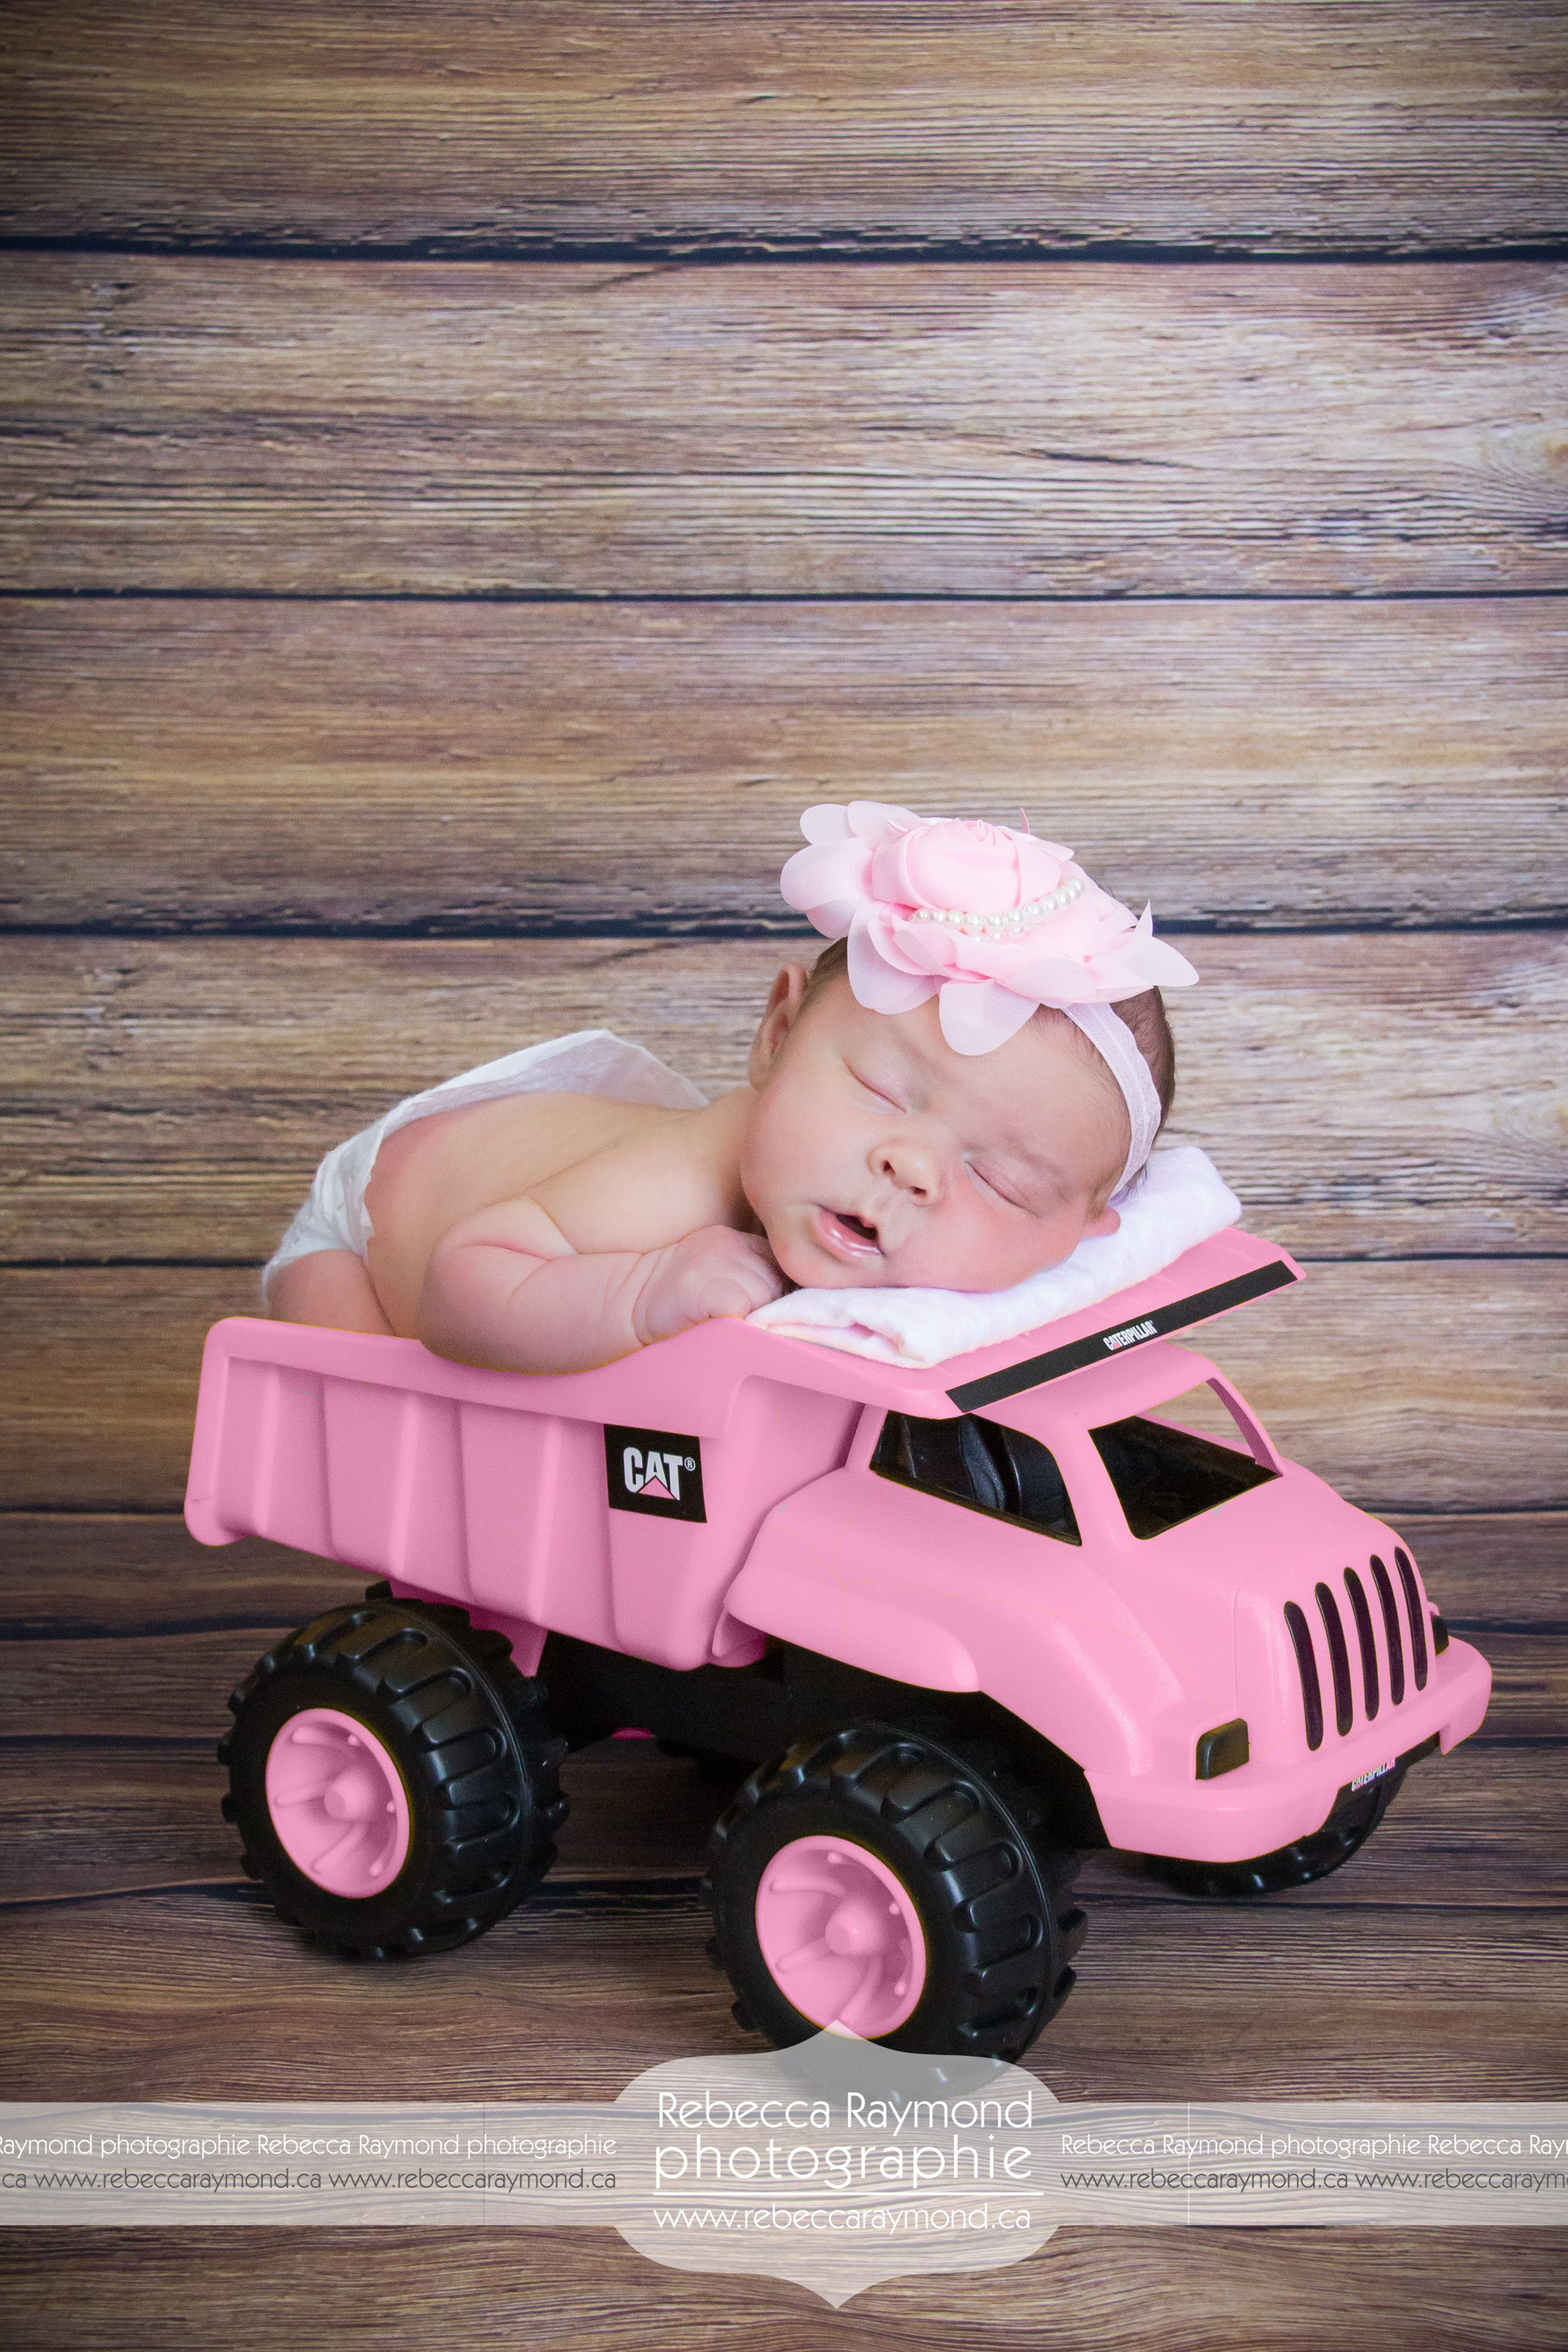 Newborn in a pink Tonka Baby sleeping toys photoshoot newborn ideas pose and positions